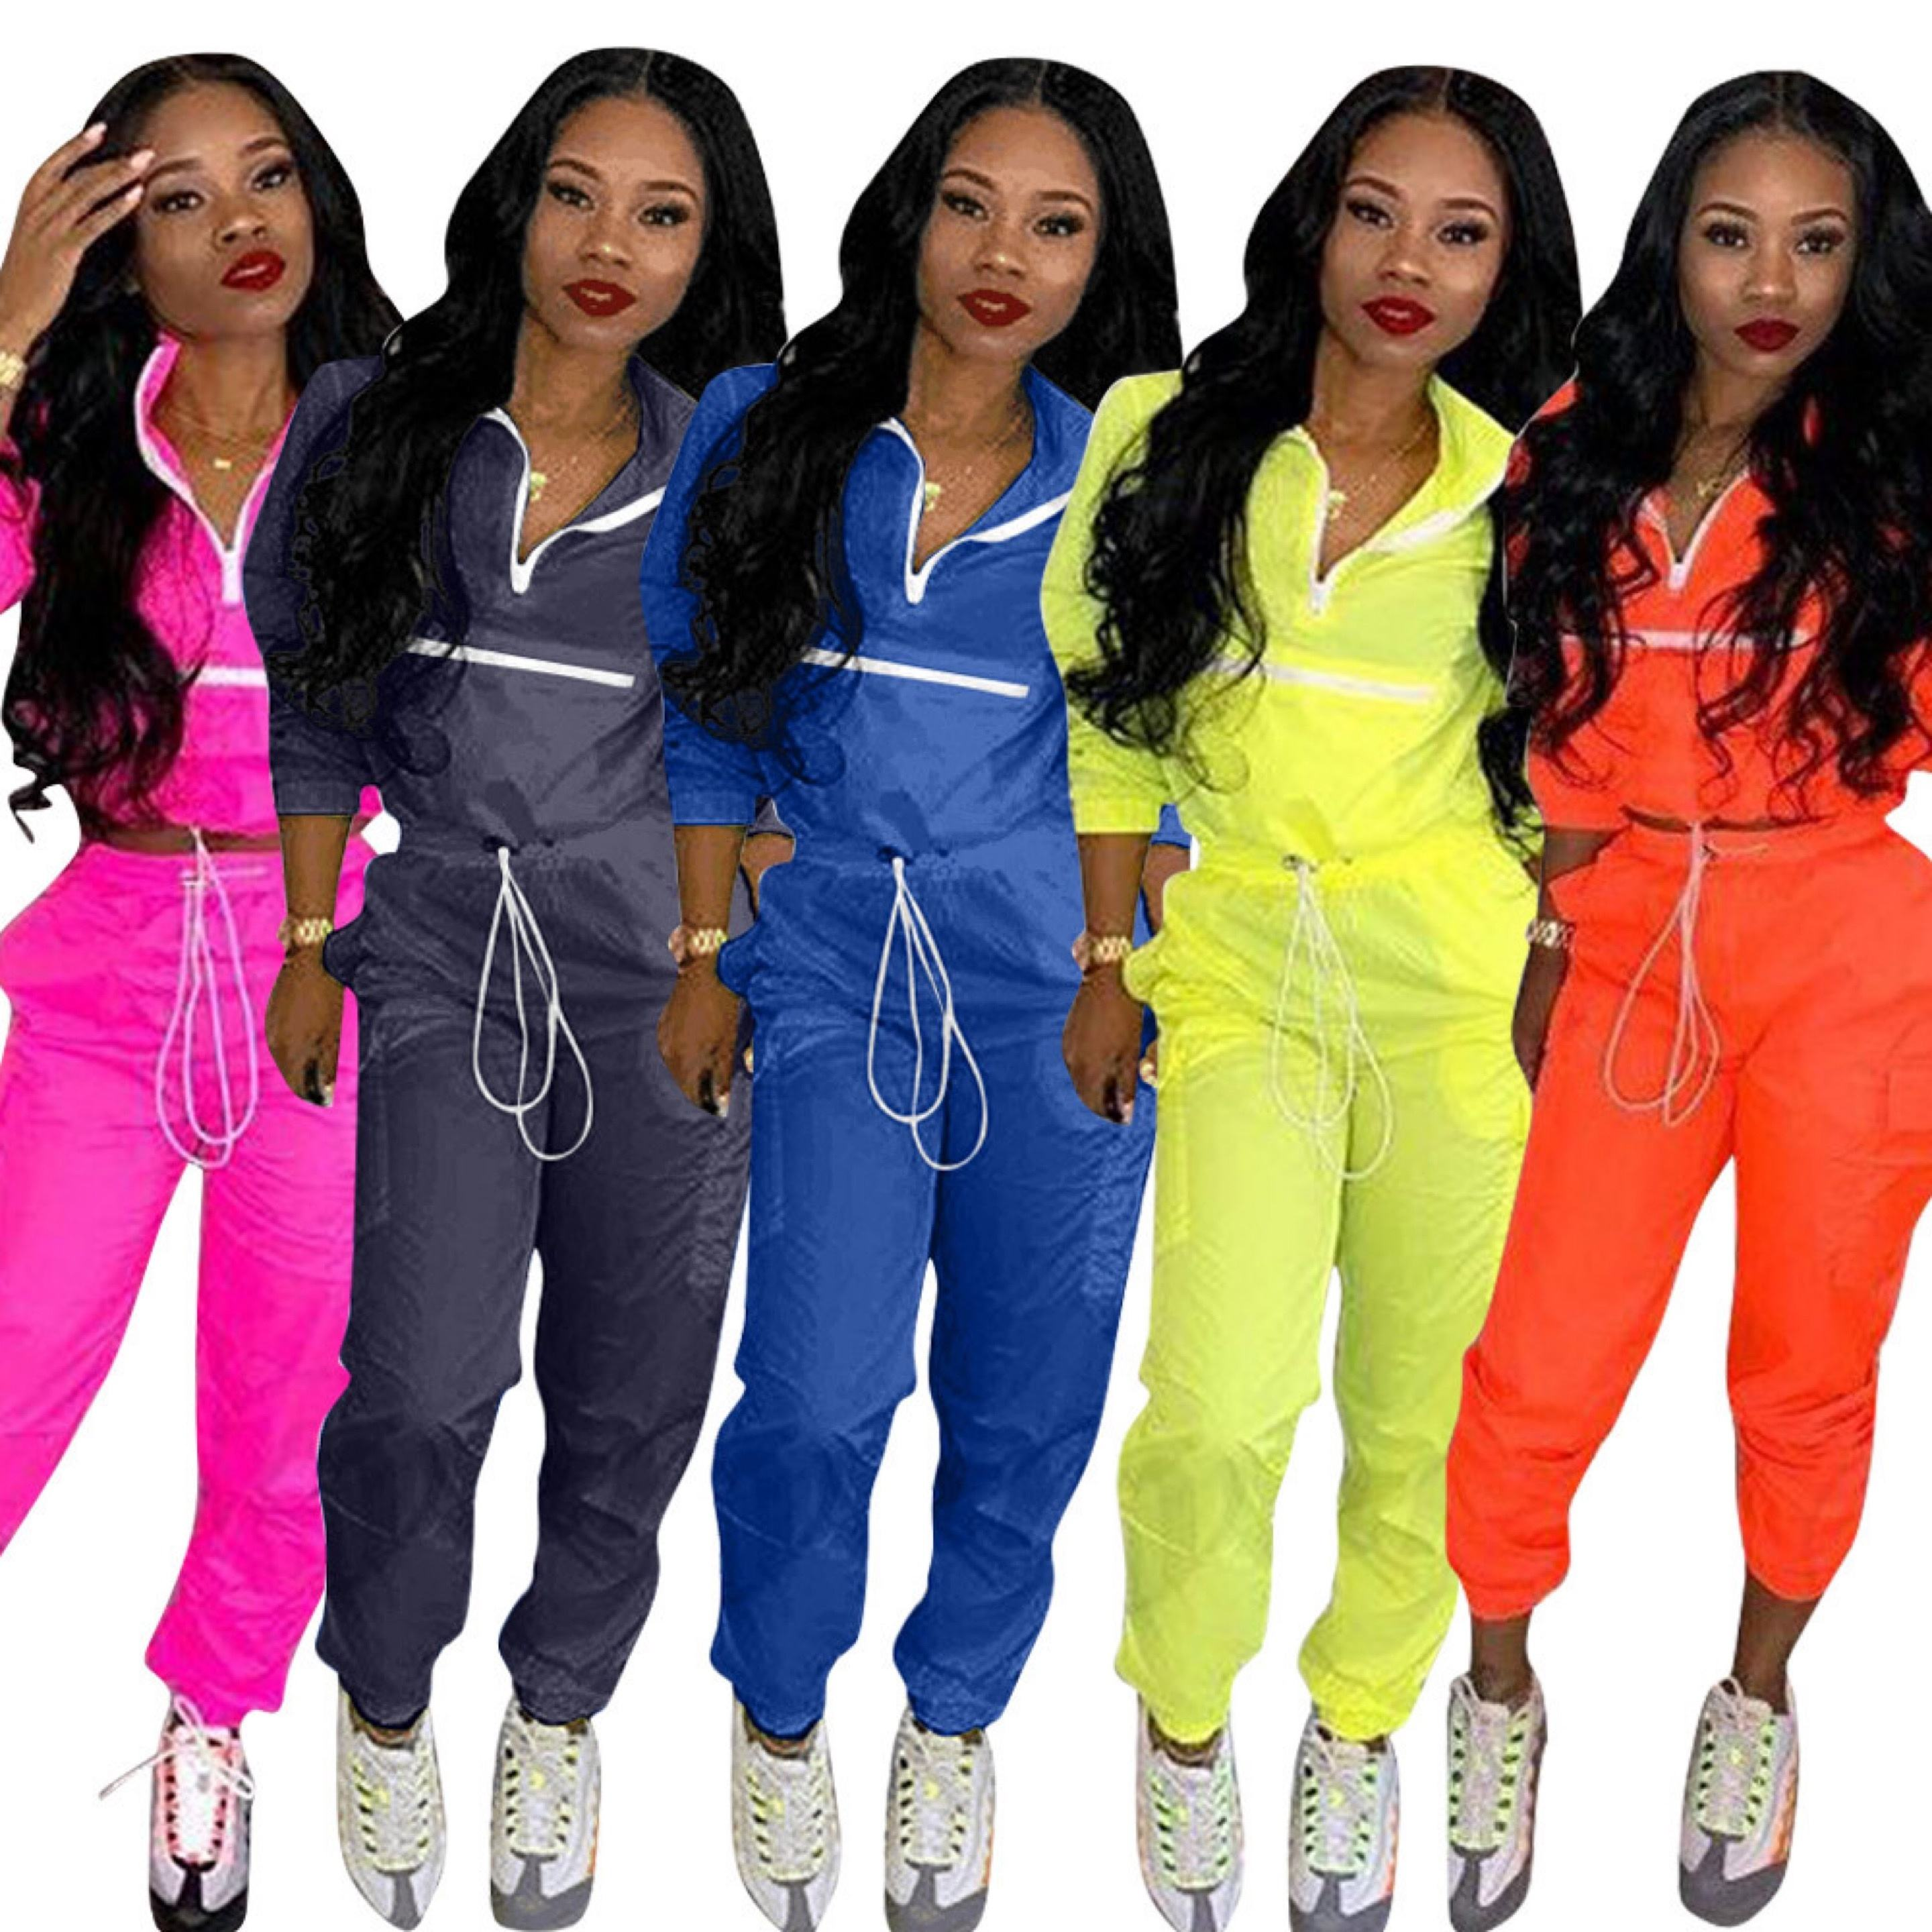 New European fashion casual zipper stitching set Sportswear women clothing lady